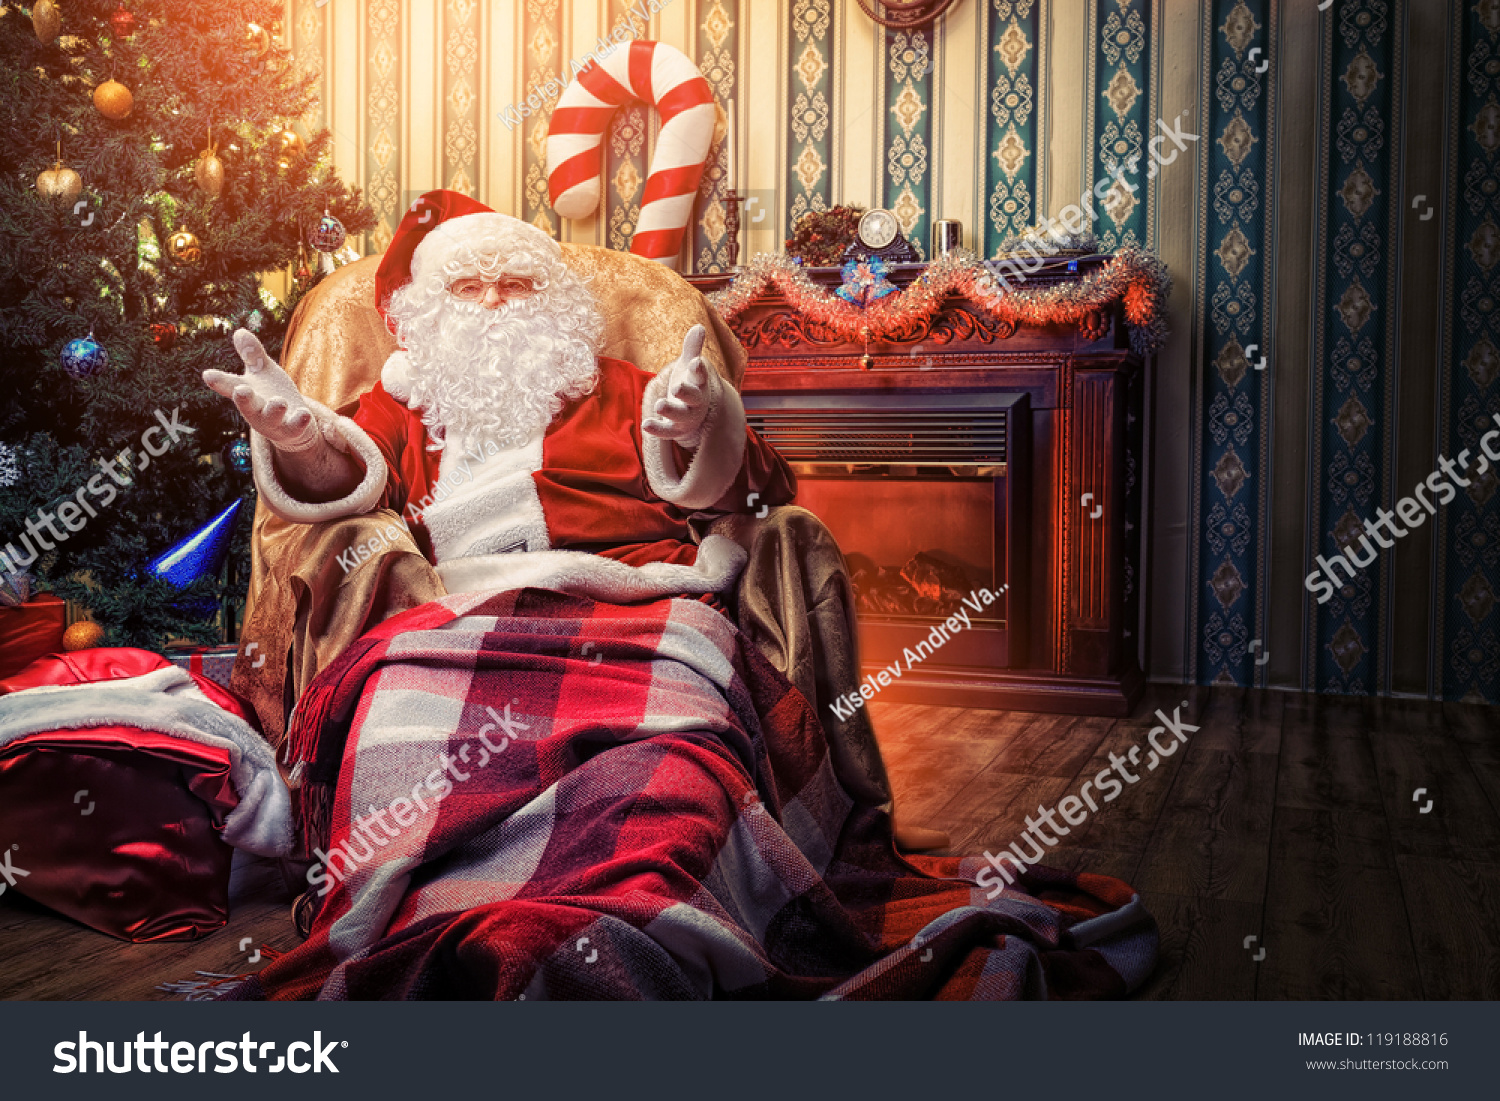 Home Interiors Gifts Inc Website Santa Claus Having Rest Comfortable Chair Stock Photo